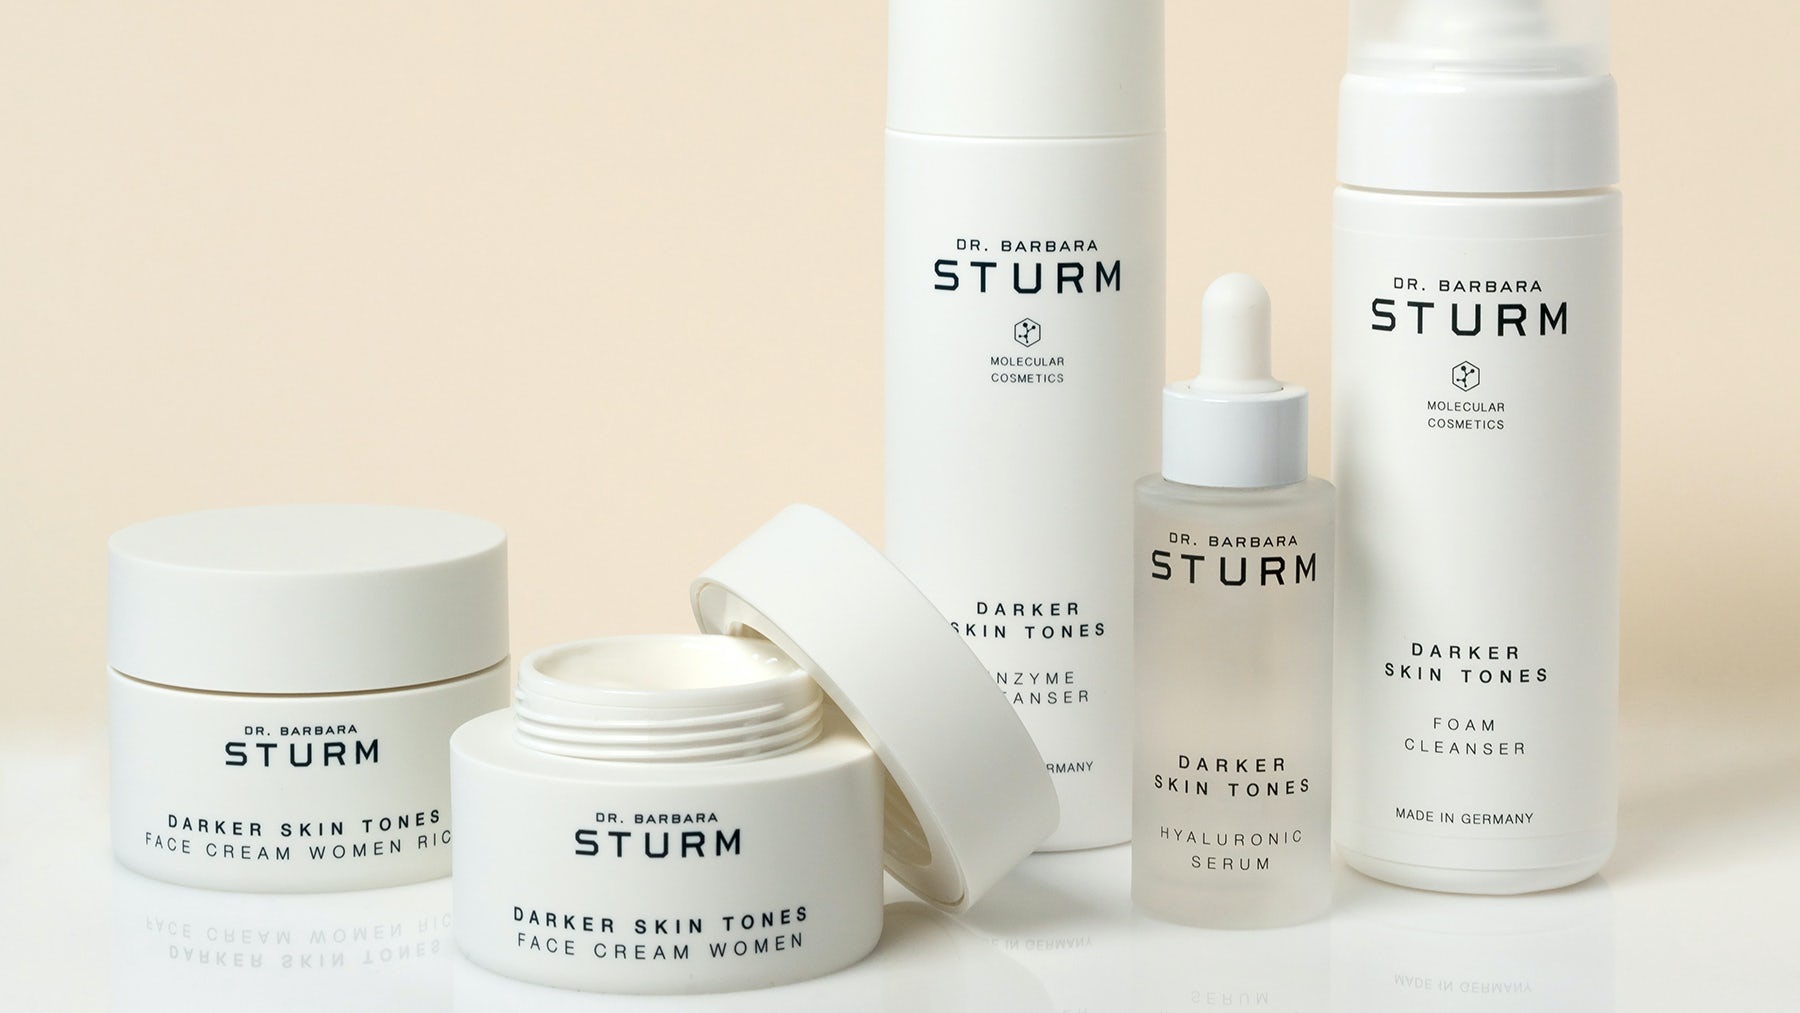 Dr. Barbara Sturm darker skin tones line | Source: Courtesy